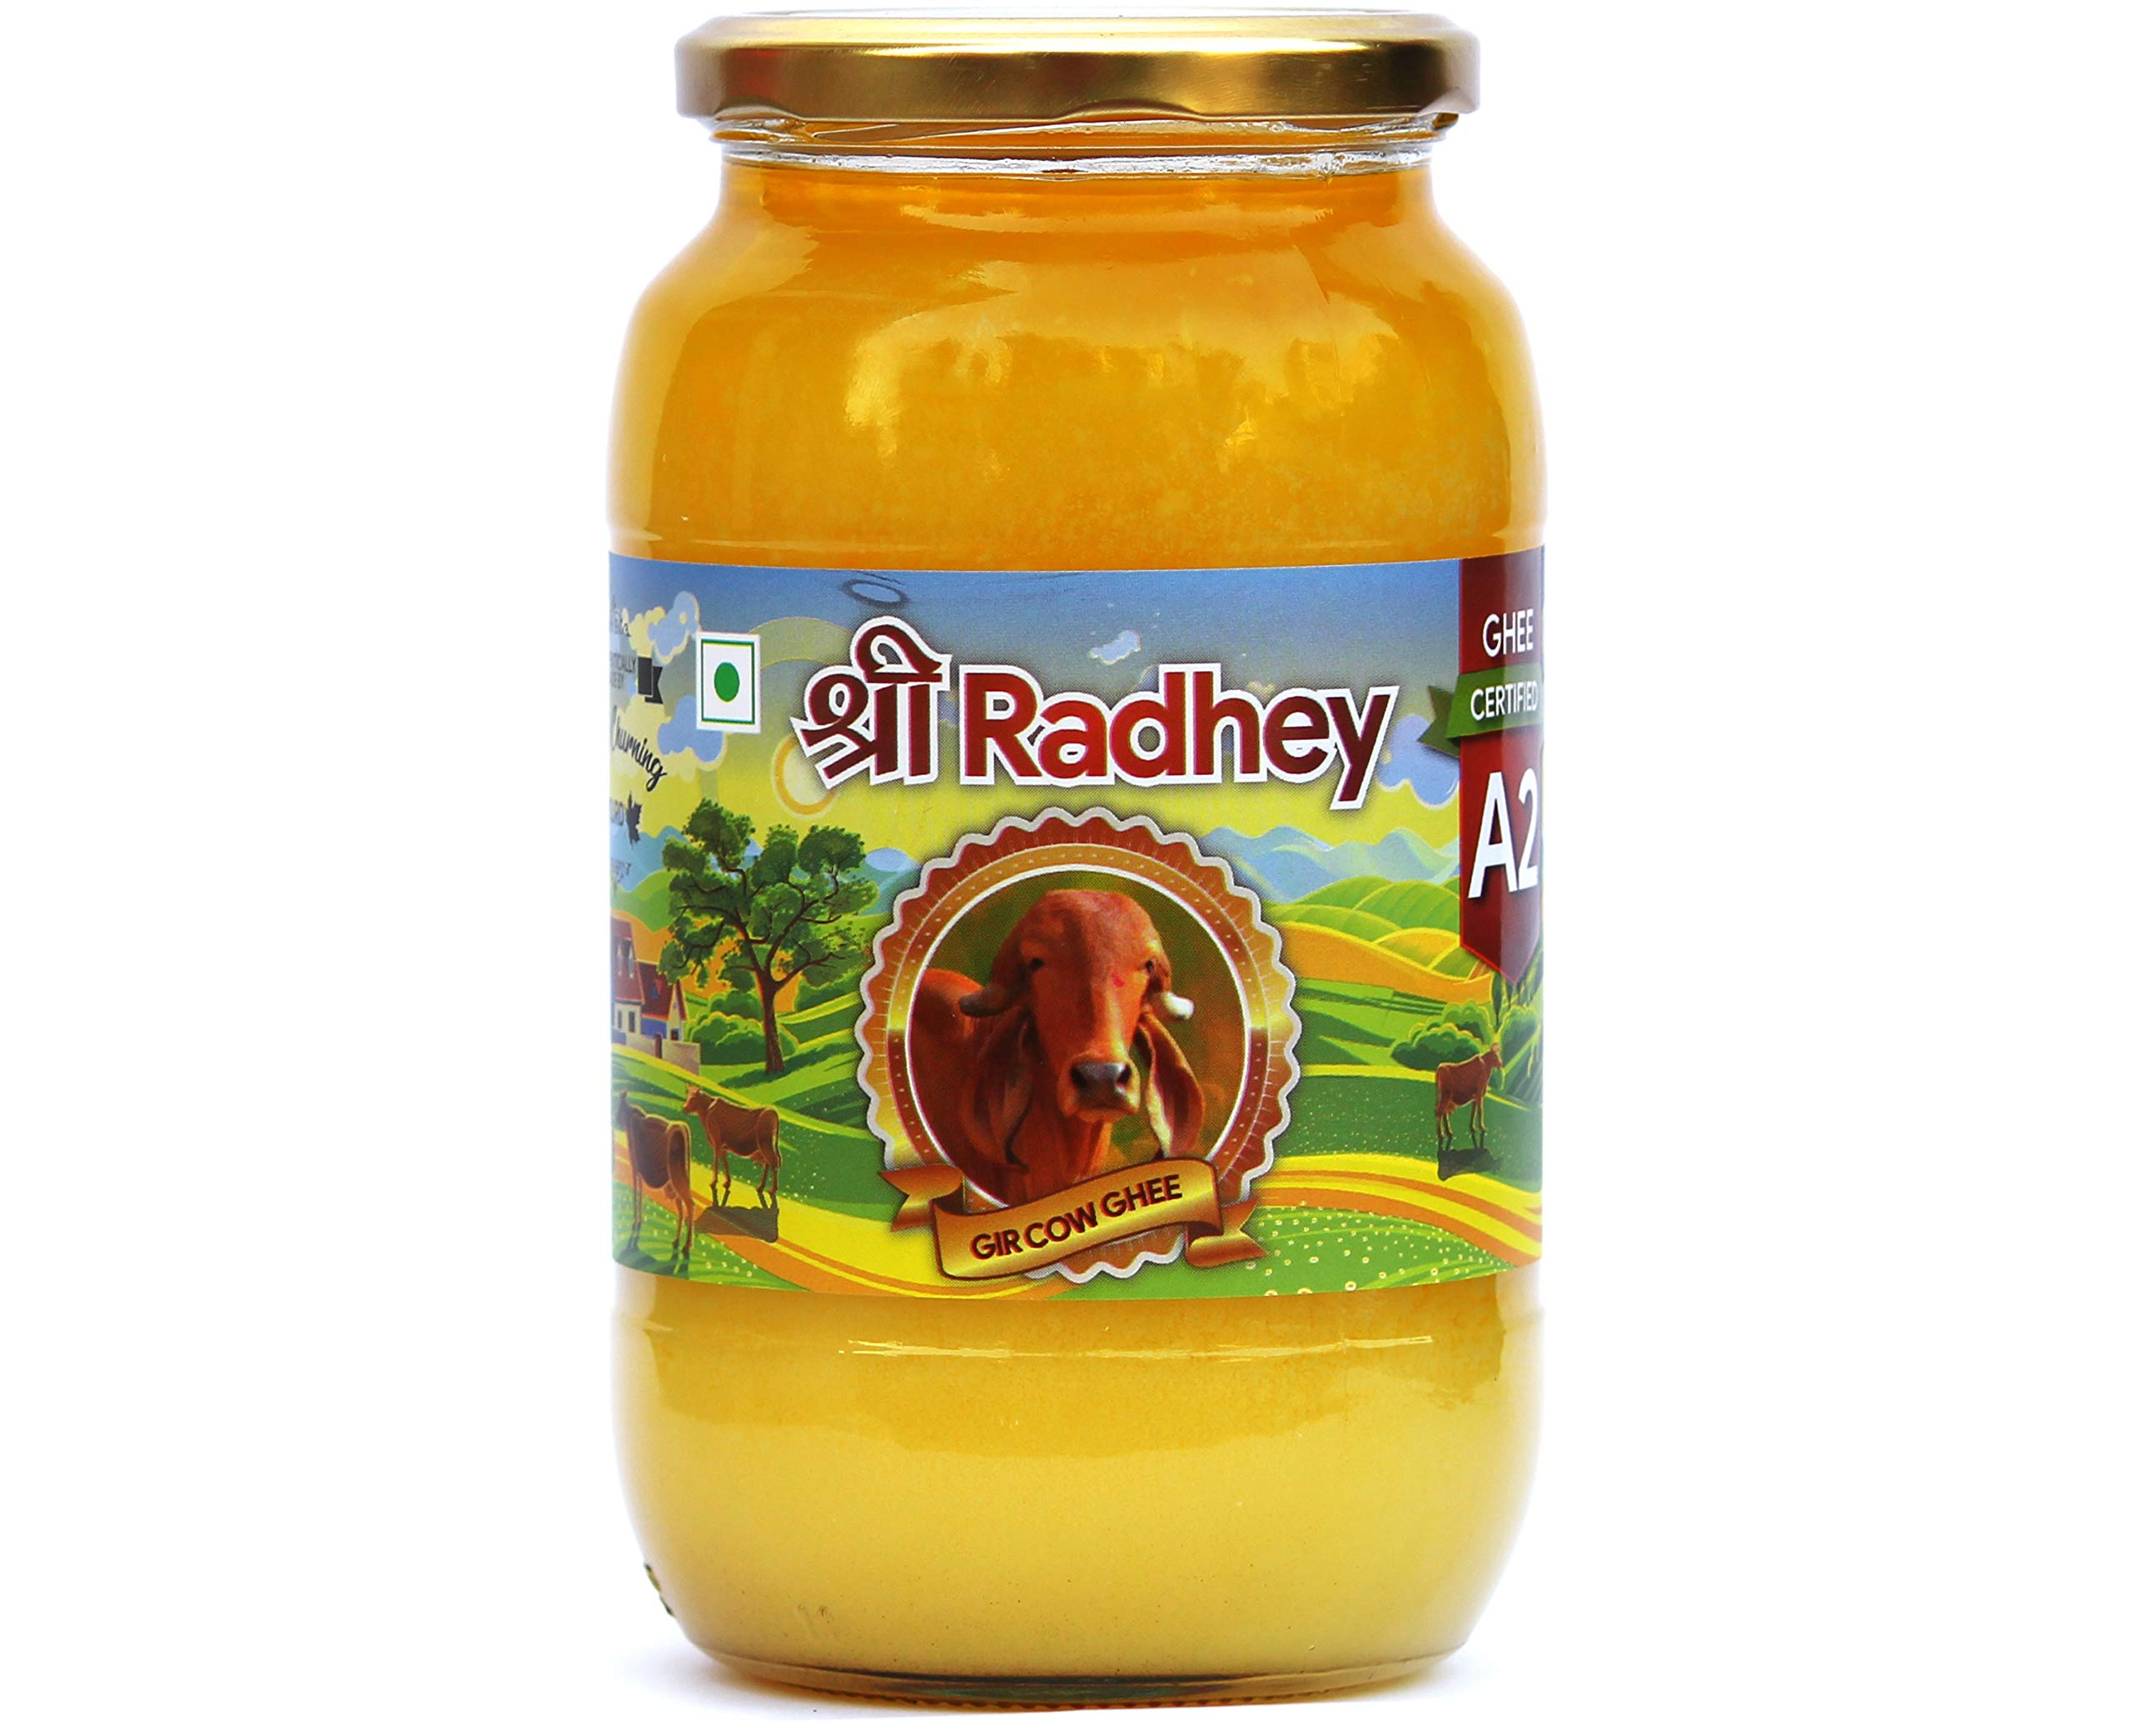 Shree Radhey Certified A2 Gir Cow Ghee - Gluten Free - (Traditionaly Hand Churned) 1000 ml by Shree Radhey (Image #1)